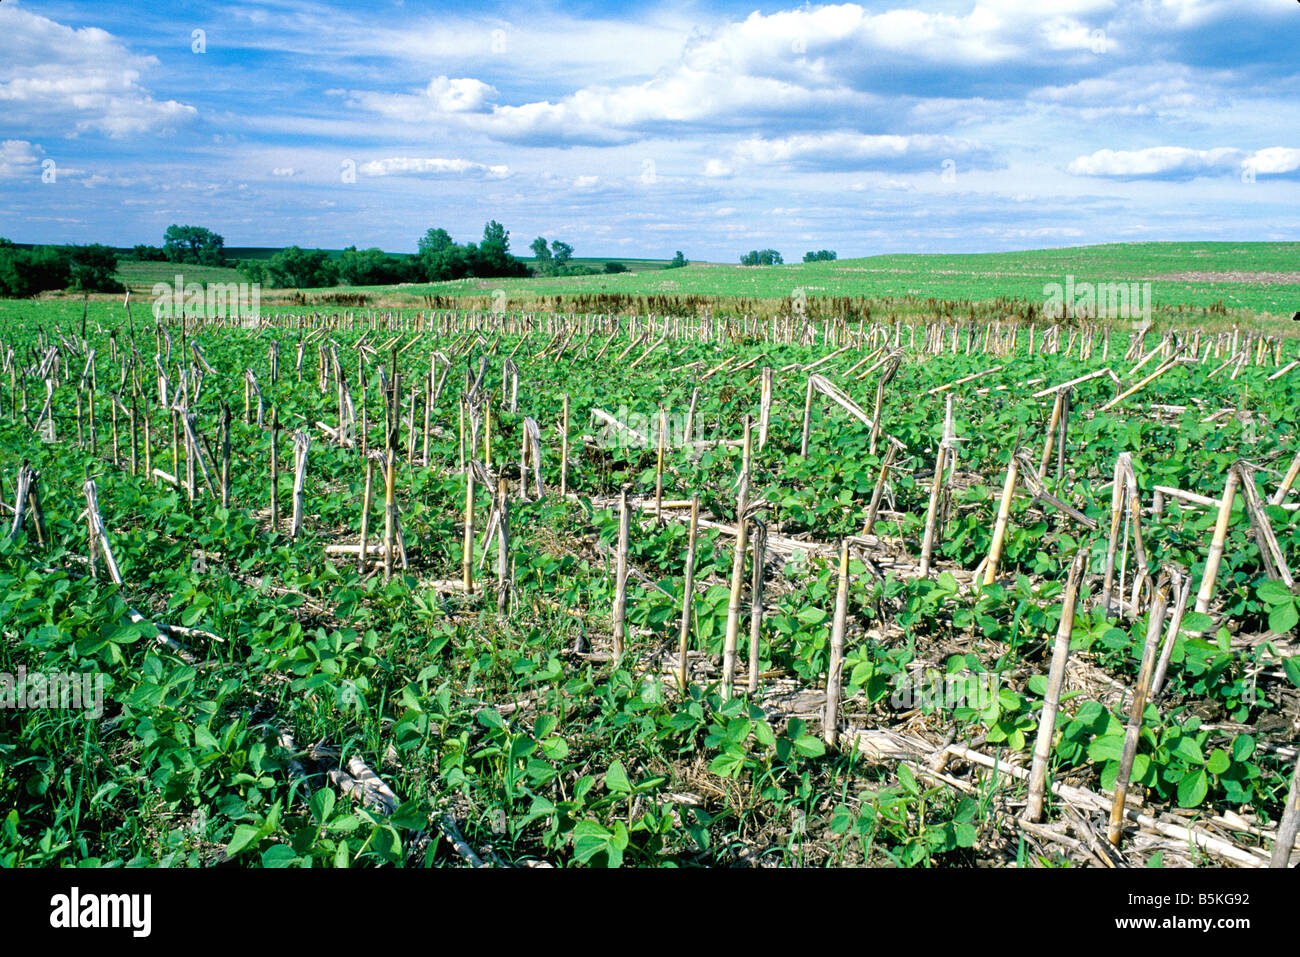 Soybeans growing in 'no till'  dirty field. - Stock Image